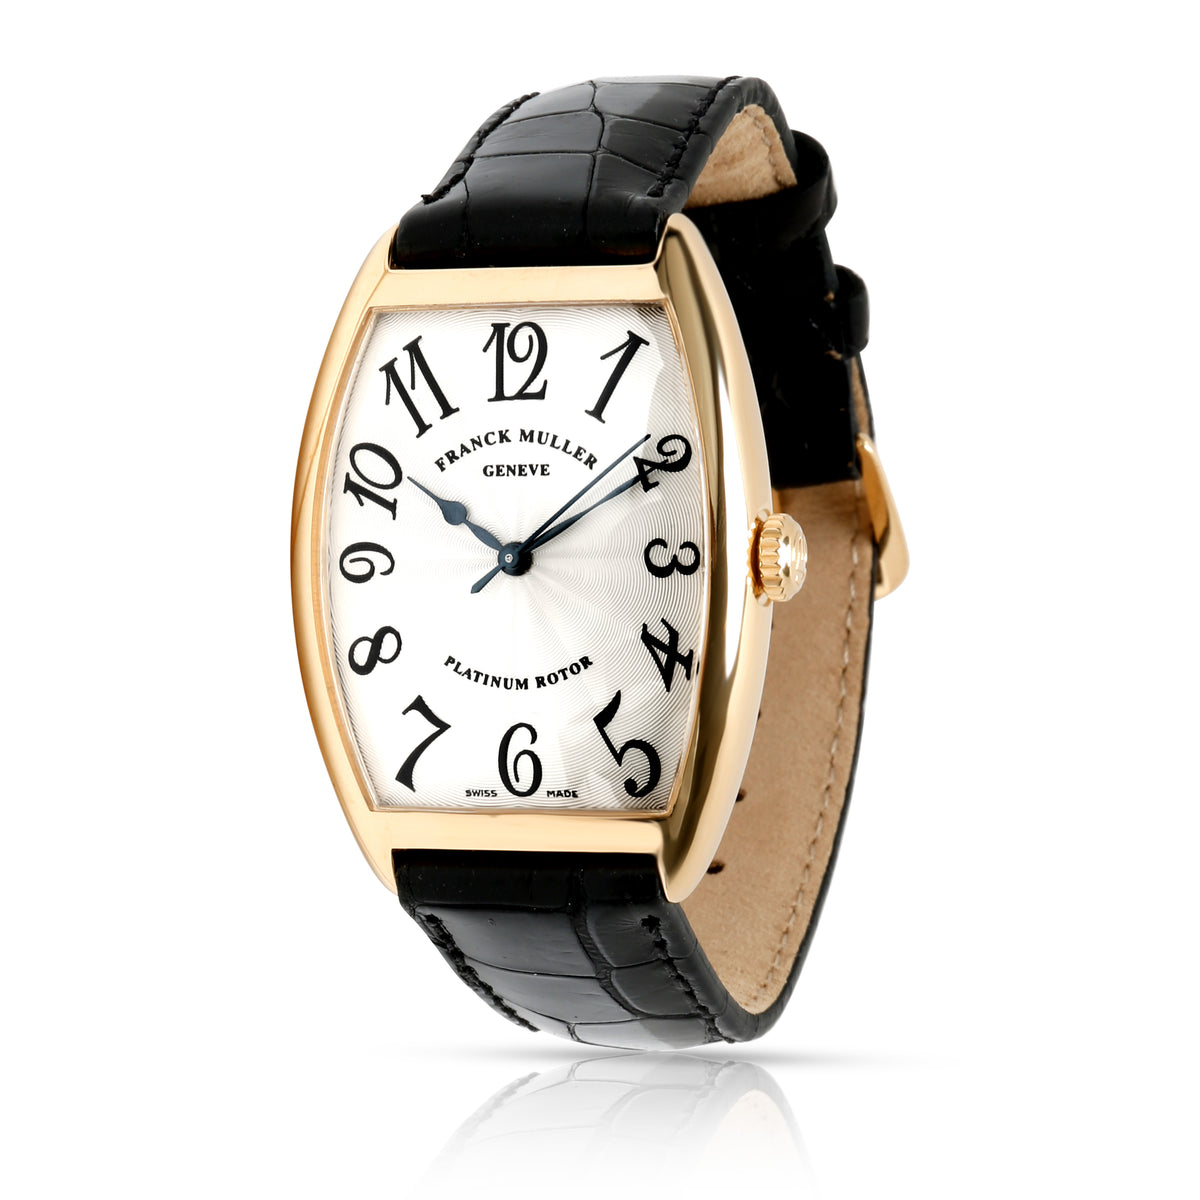 Franck Muller Cintree Curvex 2852 SC Unisex Watch in 18kt Yellow Gold